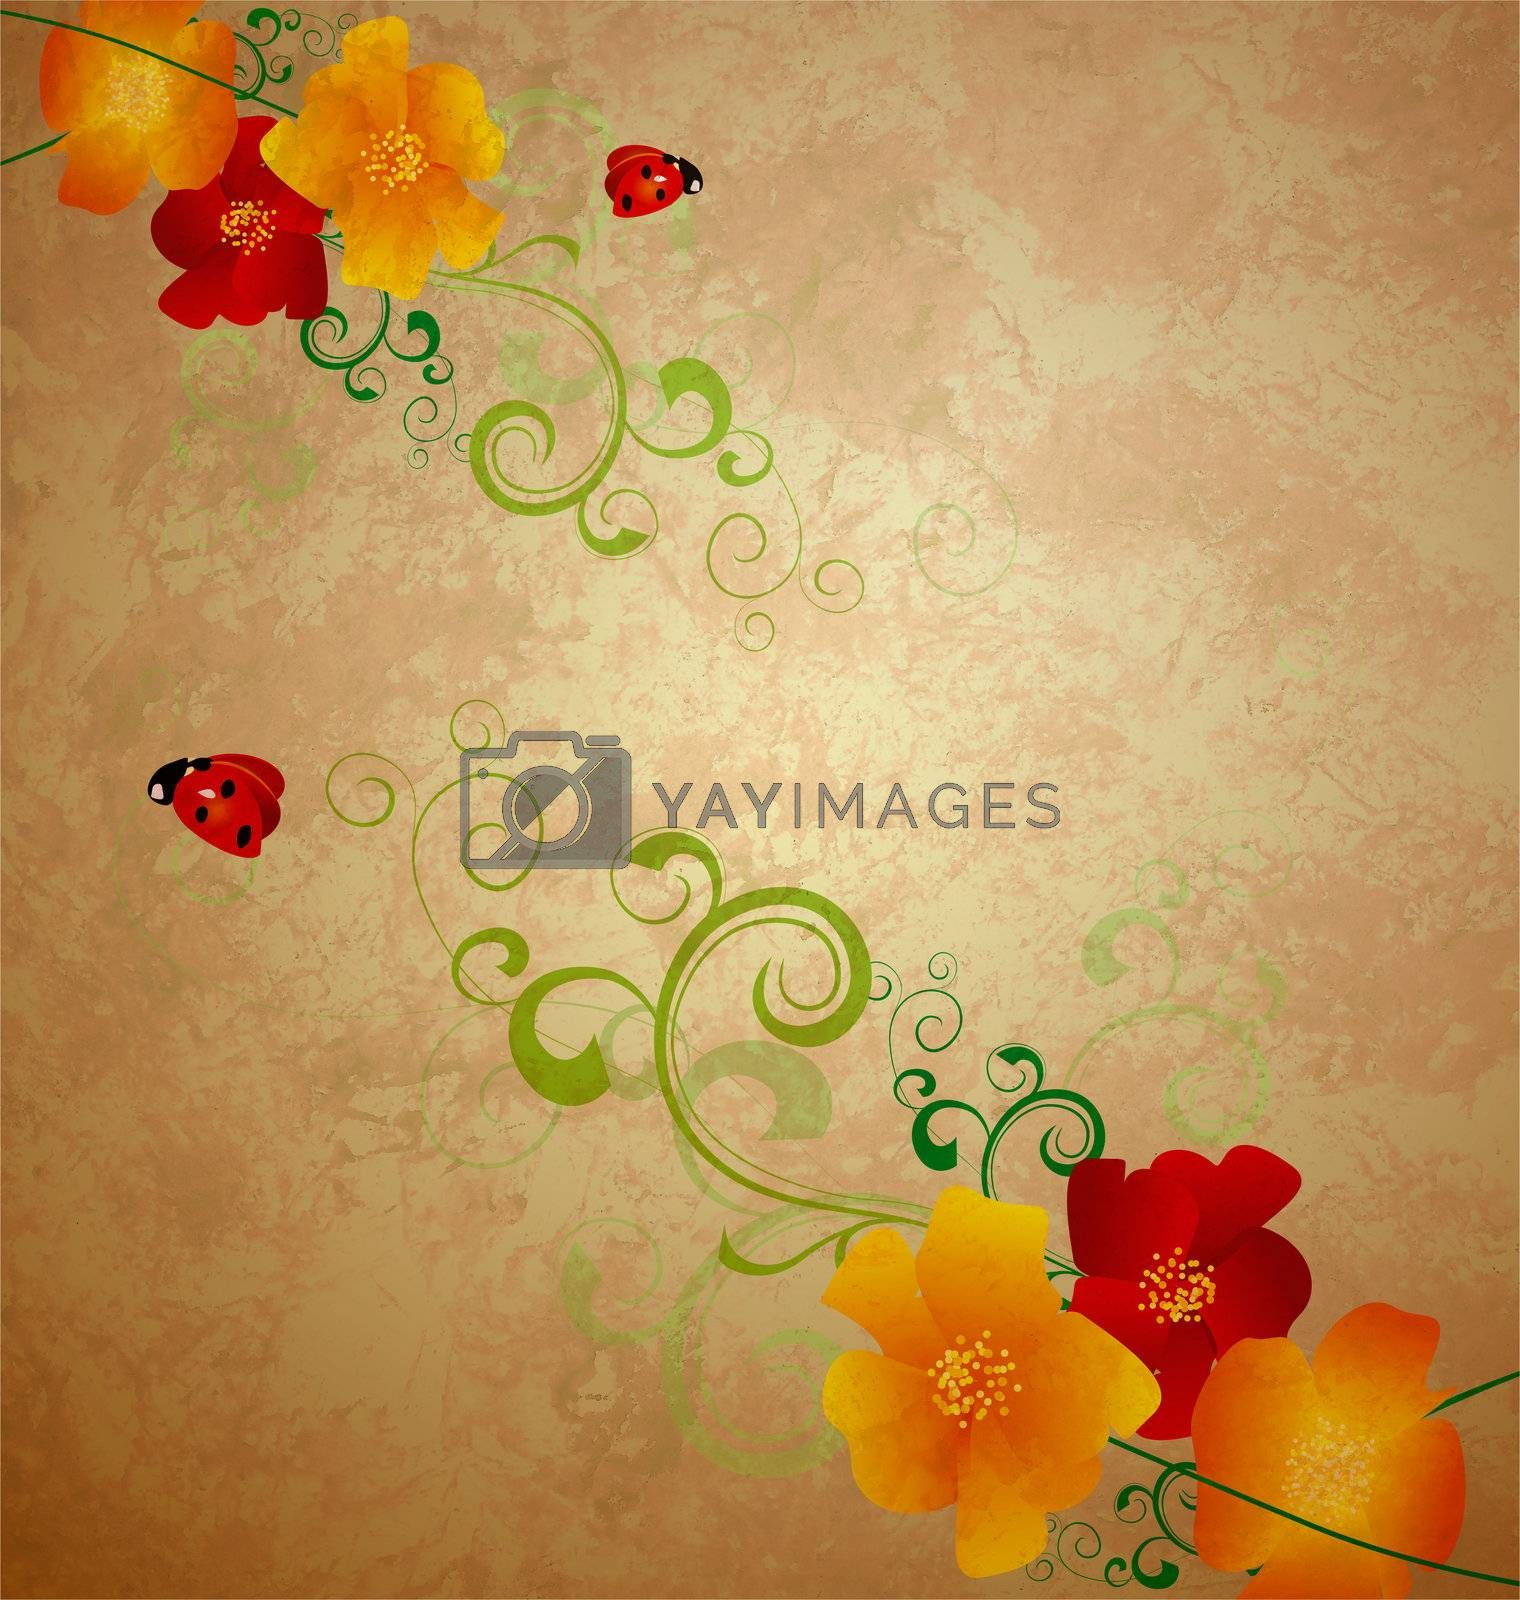 red and yellow poppies illustration with ladybird gunge idea